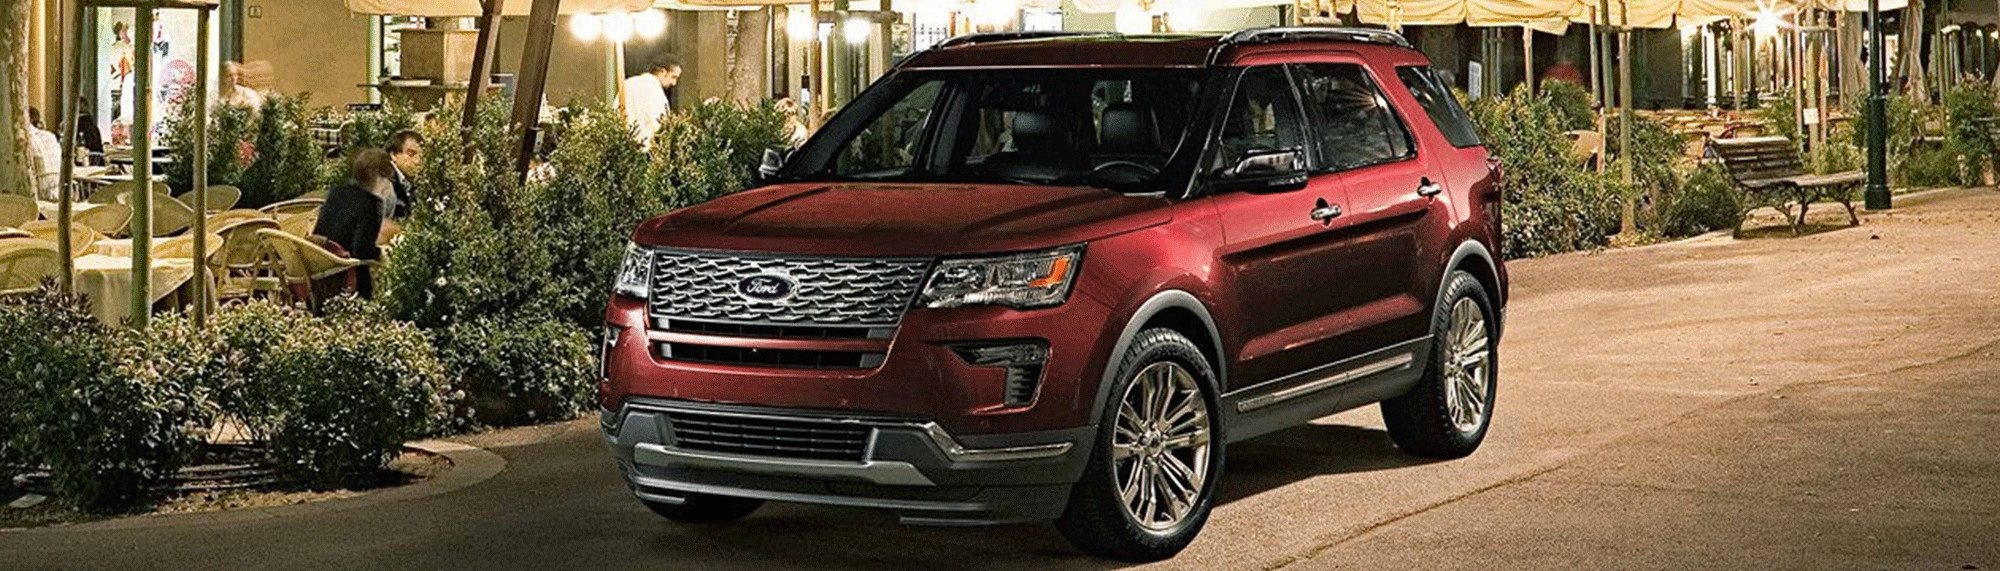 2018 Ford Explorer in Wiscasset